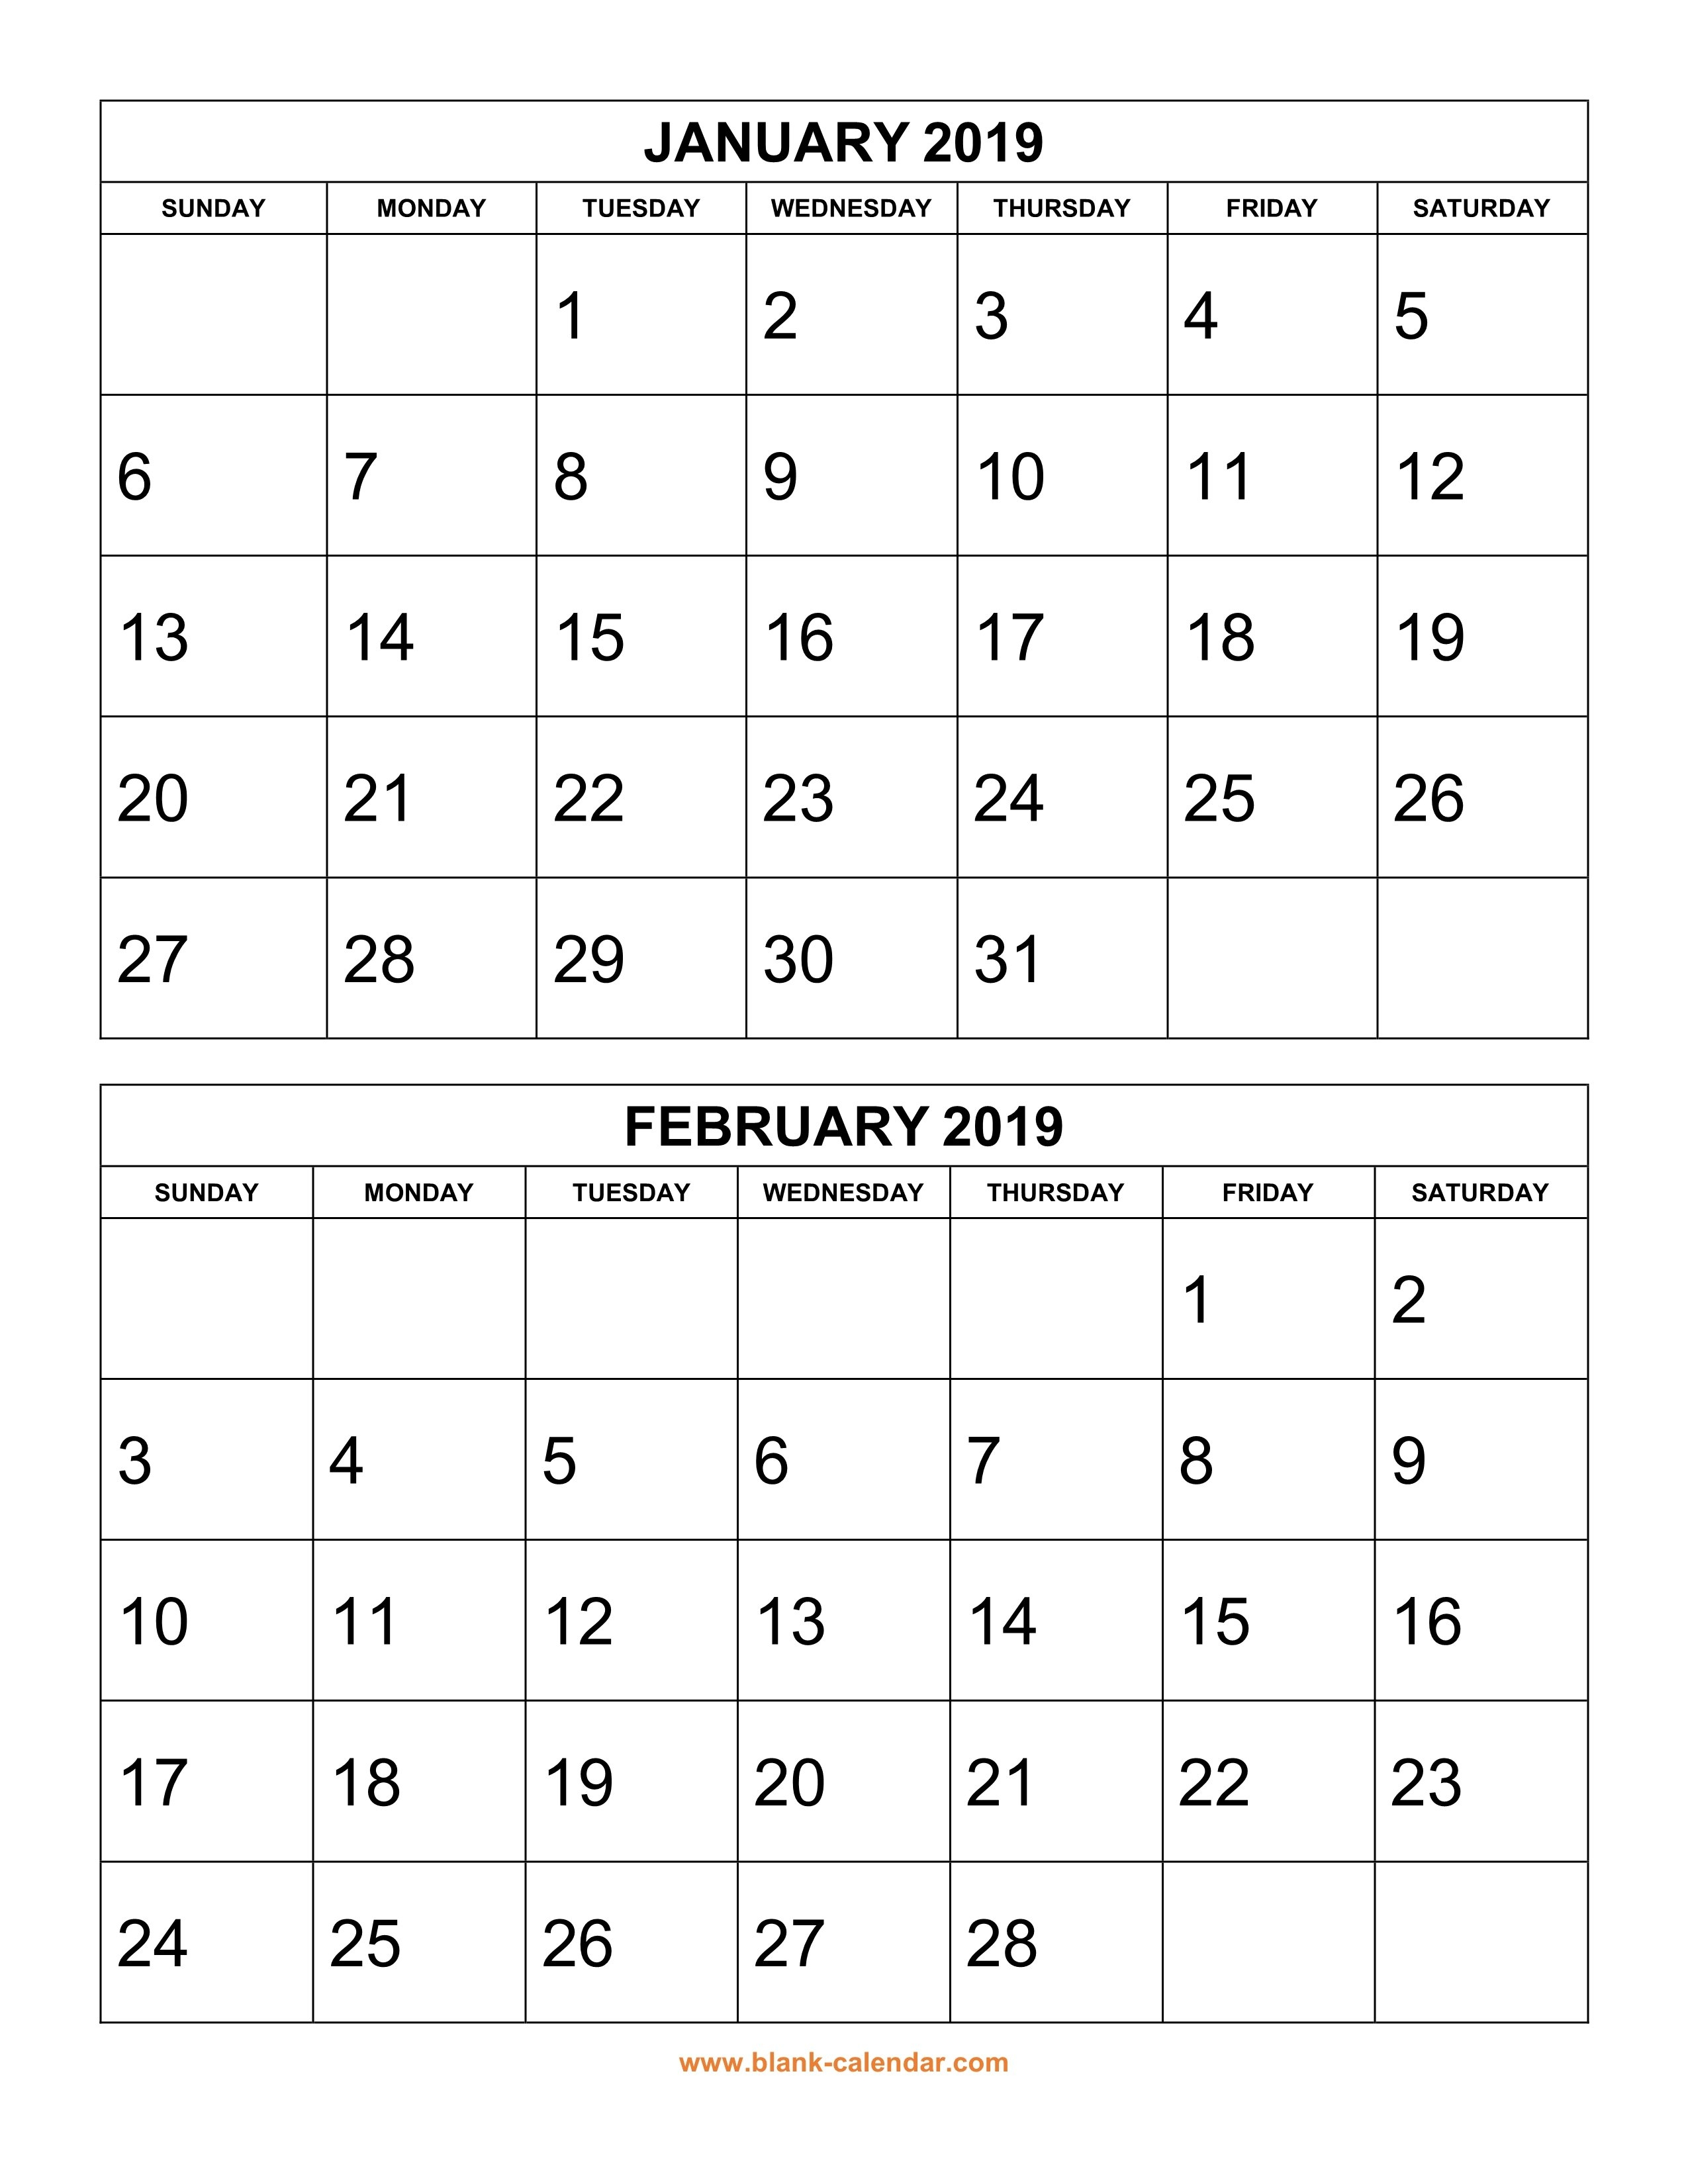 Free Download Printable Calendar 2019, 2 Months Per Page, 6 Pages Print A Calendar 2019 Free